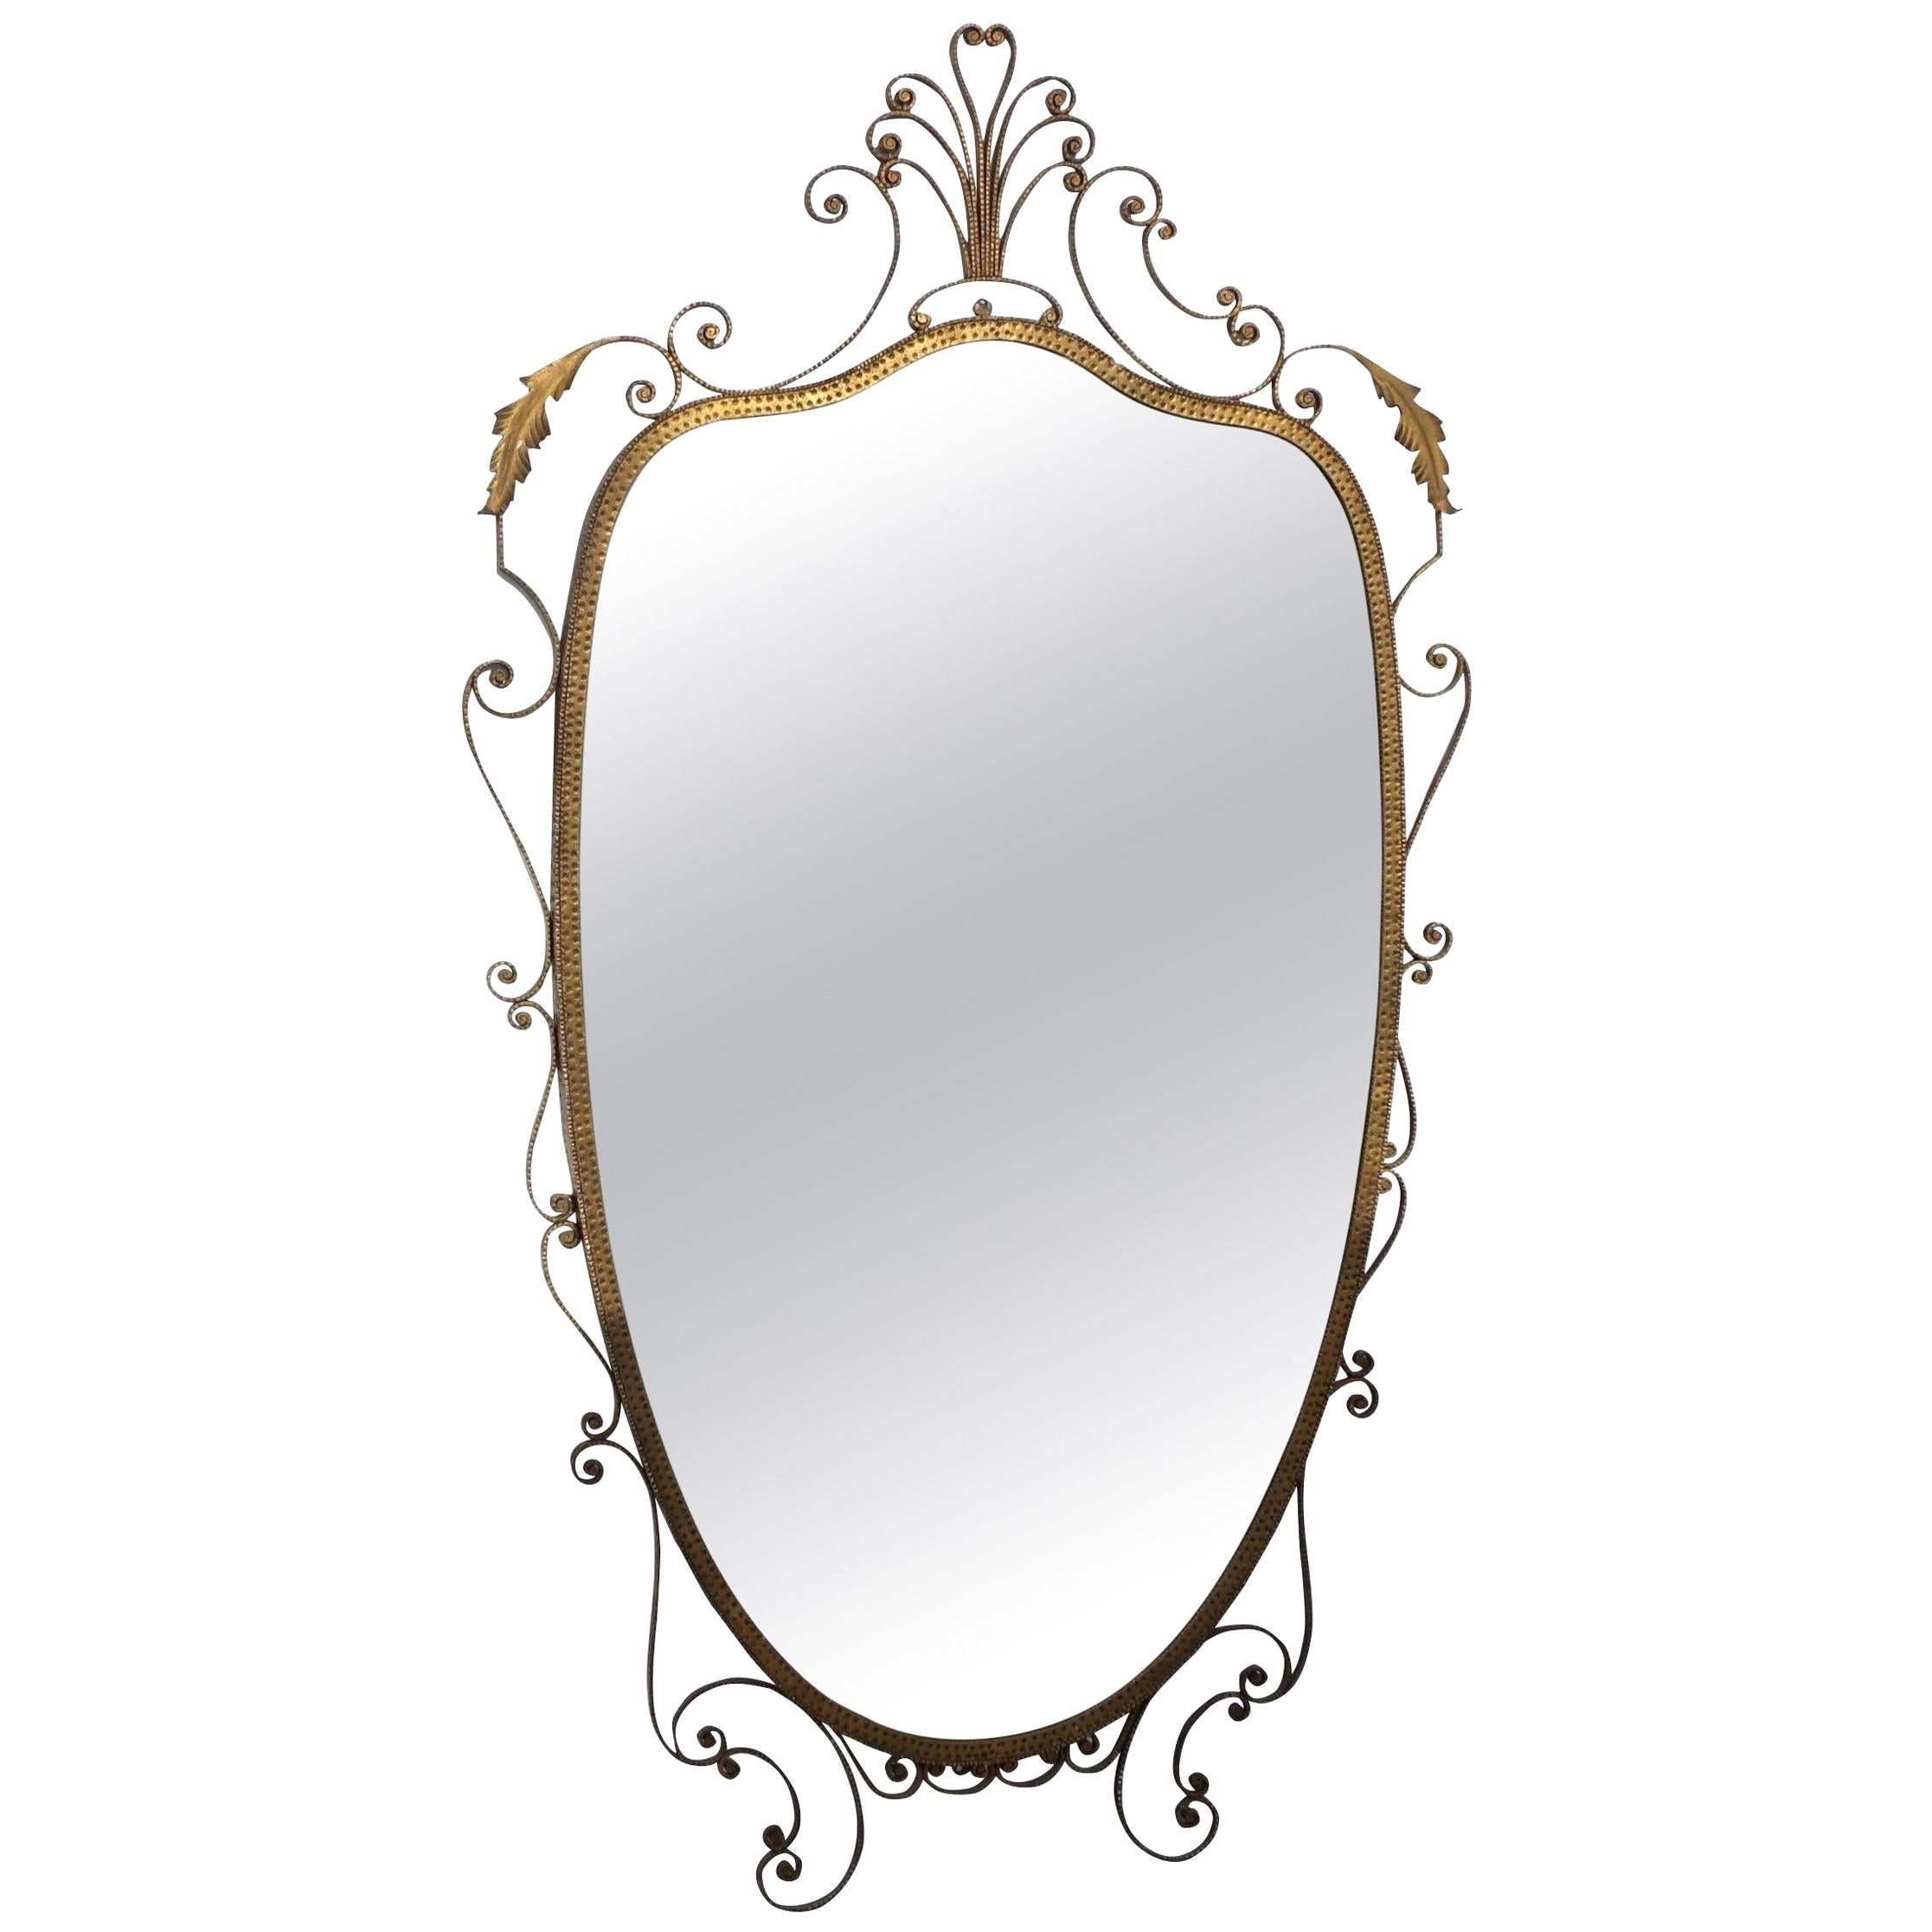 20th Century Italian Gold Metal Oval Wall Mirror